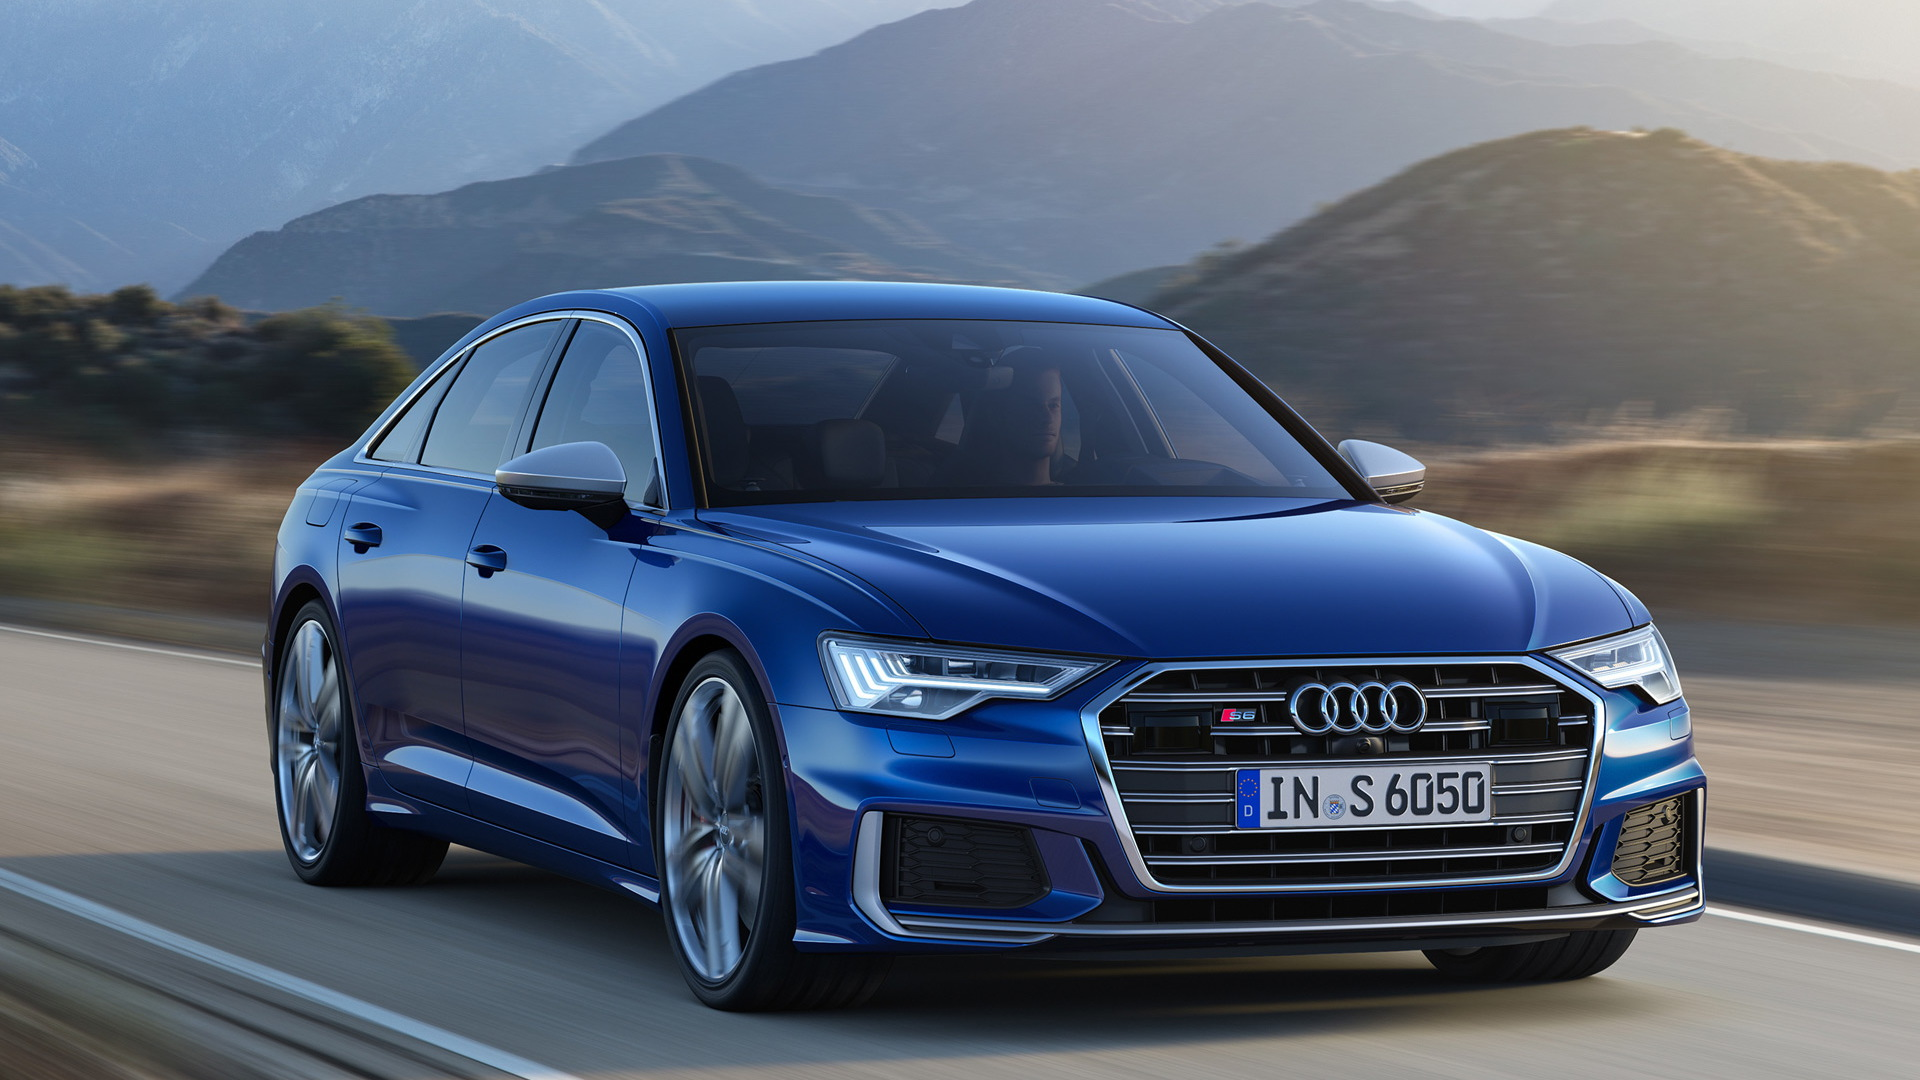 Audi S6 Sports Sedan Priced From $73,900 In The U.S.